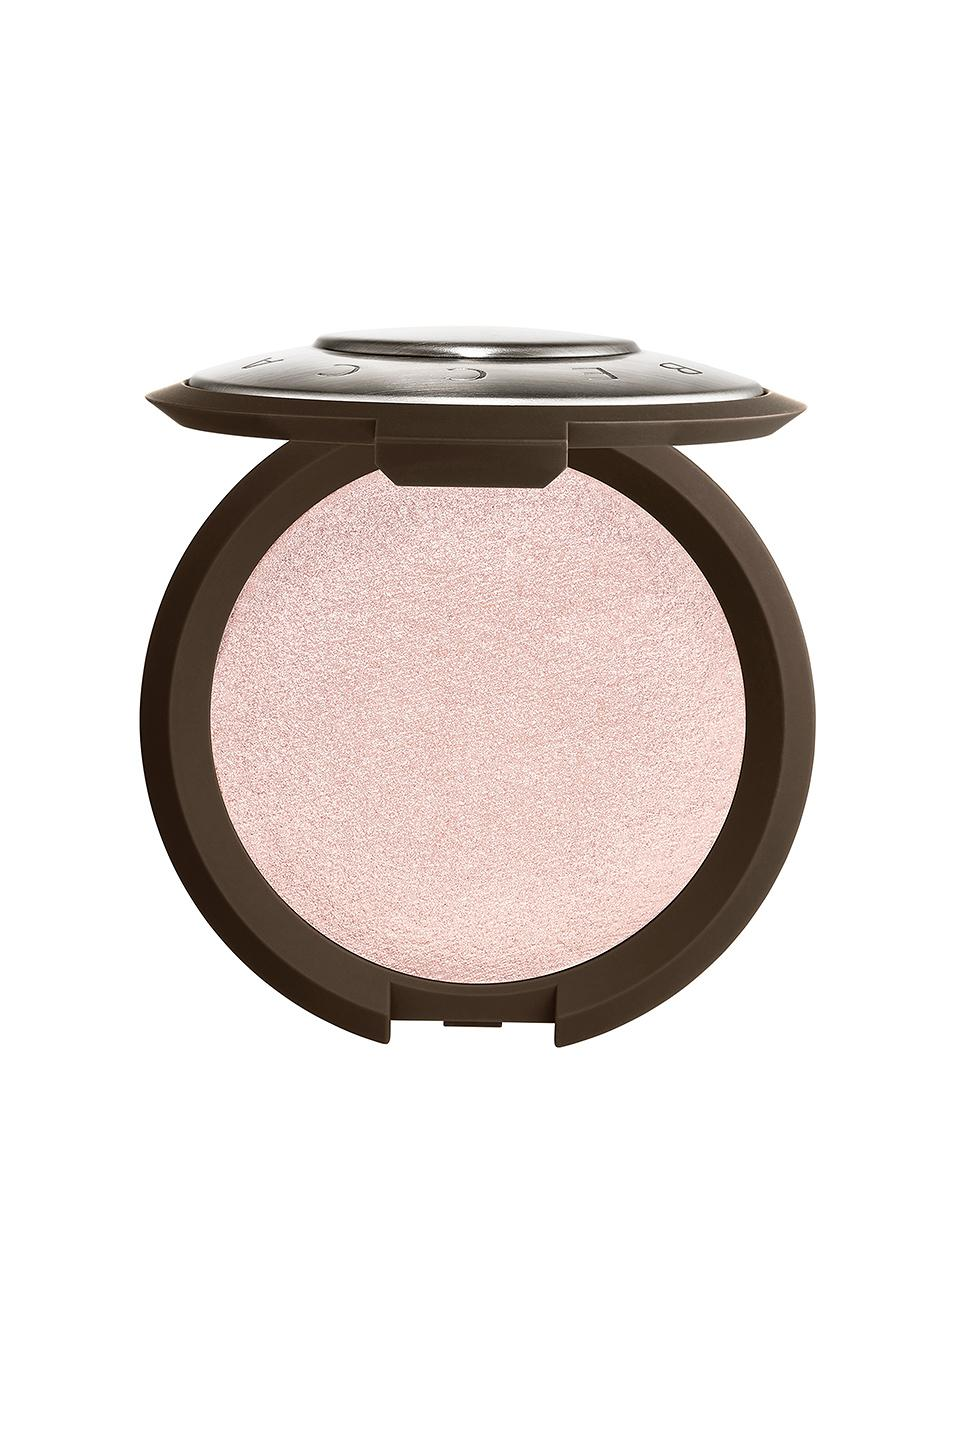 Becca Cosmetics Shimmering Skin Perfector Pressed Highlighter In Prismatic Amethyst